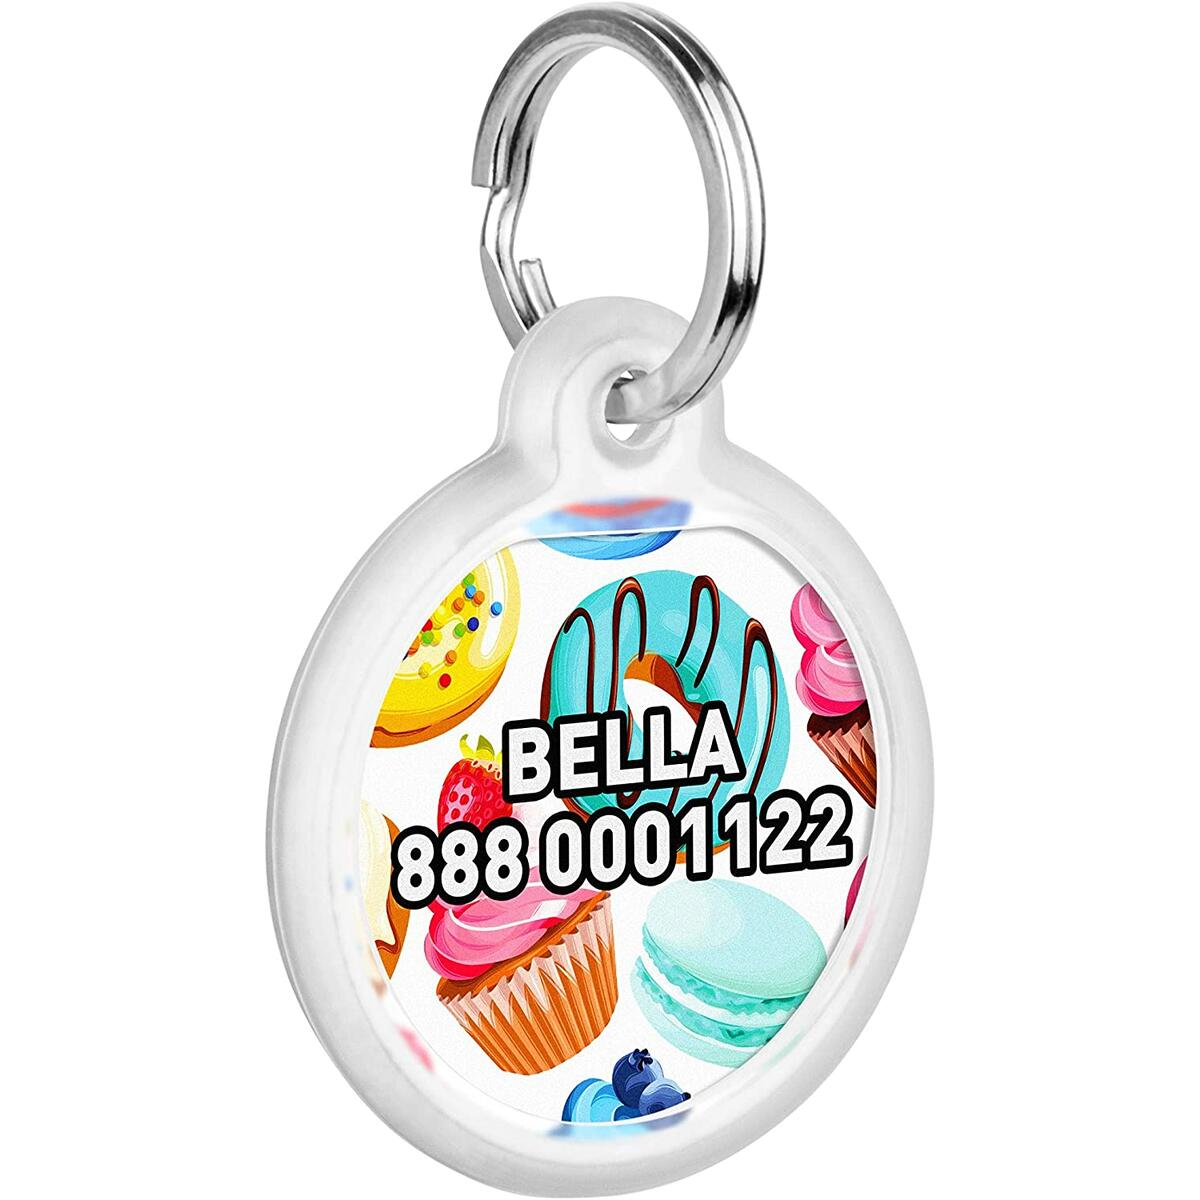 Personalized Pet ID Tag for Dog Cat with QR Pasport Global Search System of Lost Pets - Donuts Pattern